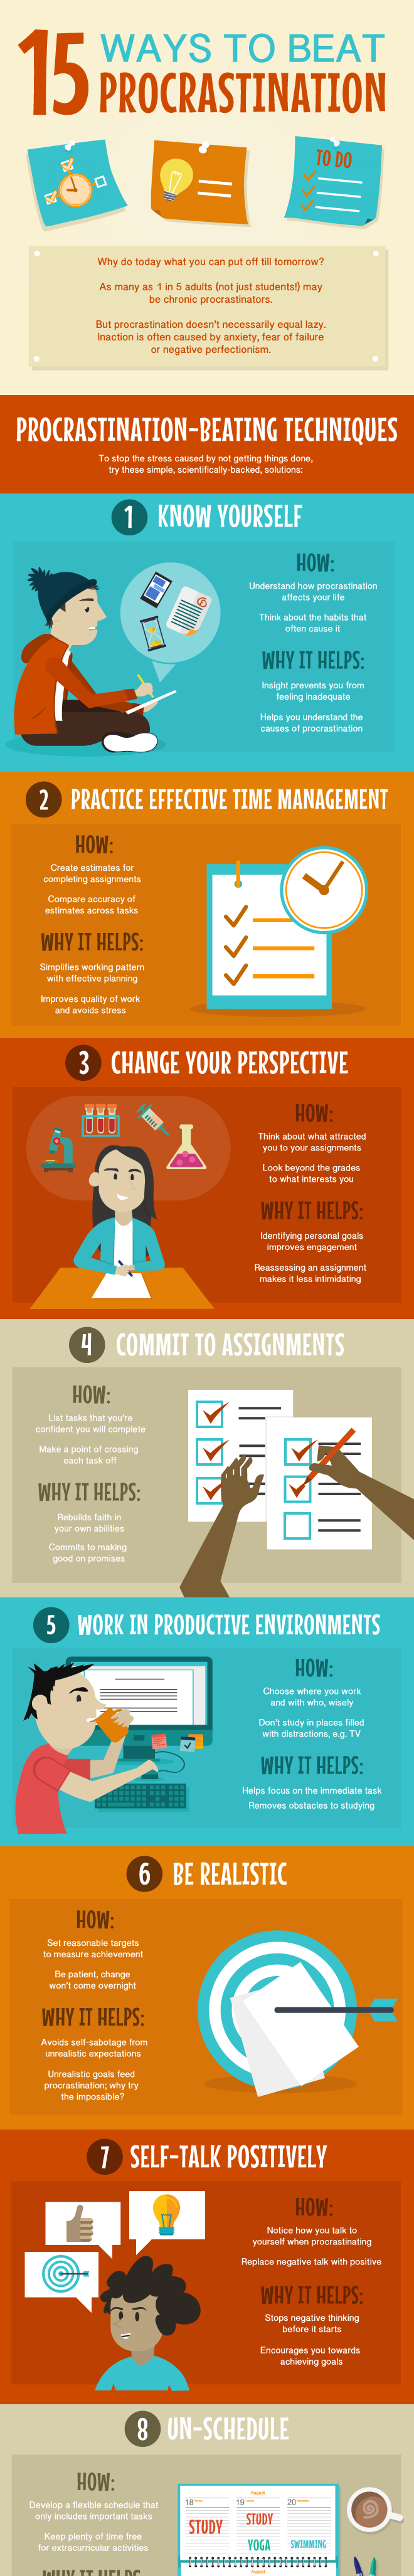 1 15 Useful Tips To Help Overcome Procrastination Infographic